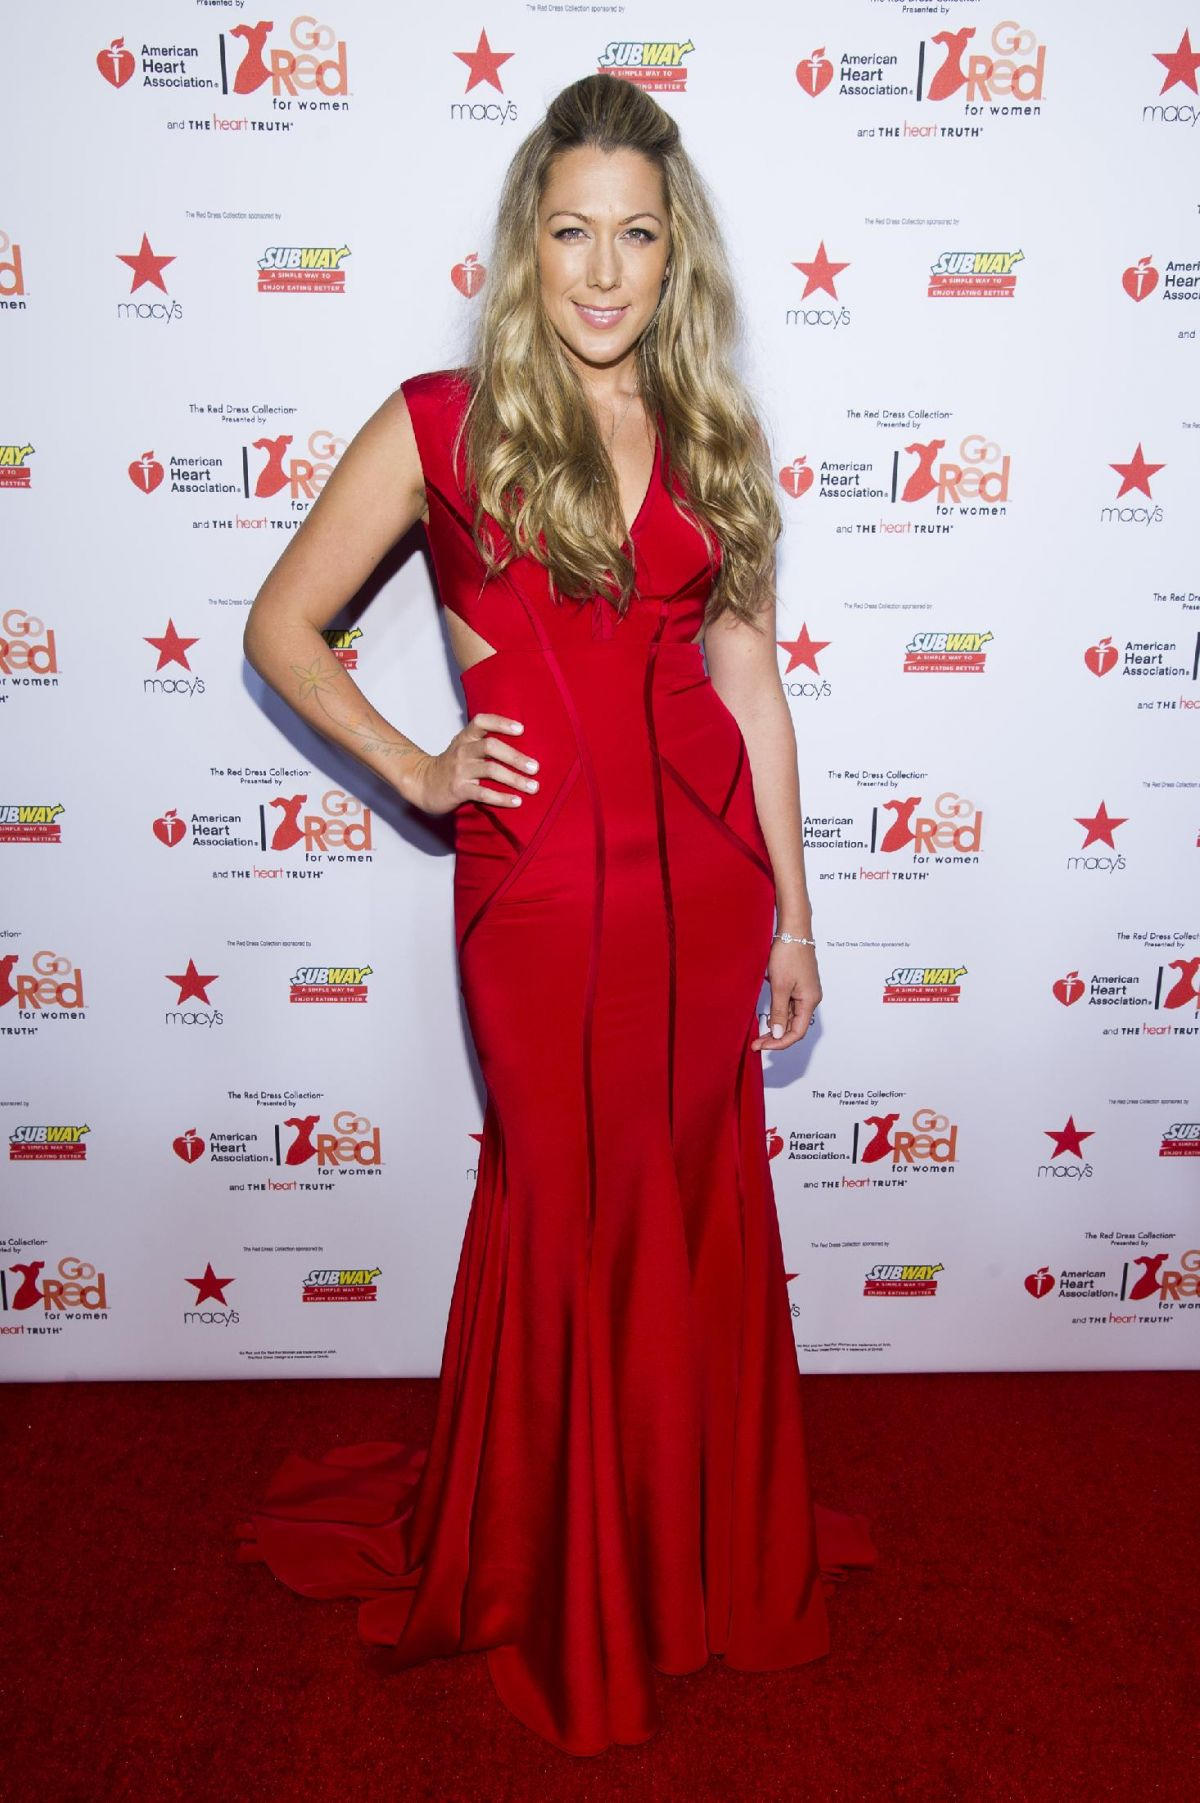 COLBIE CAILLAT at Go Red for Women, The Heart Truth Fashion Show in New York